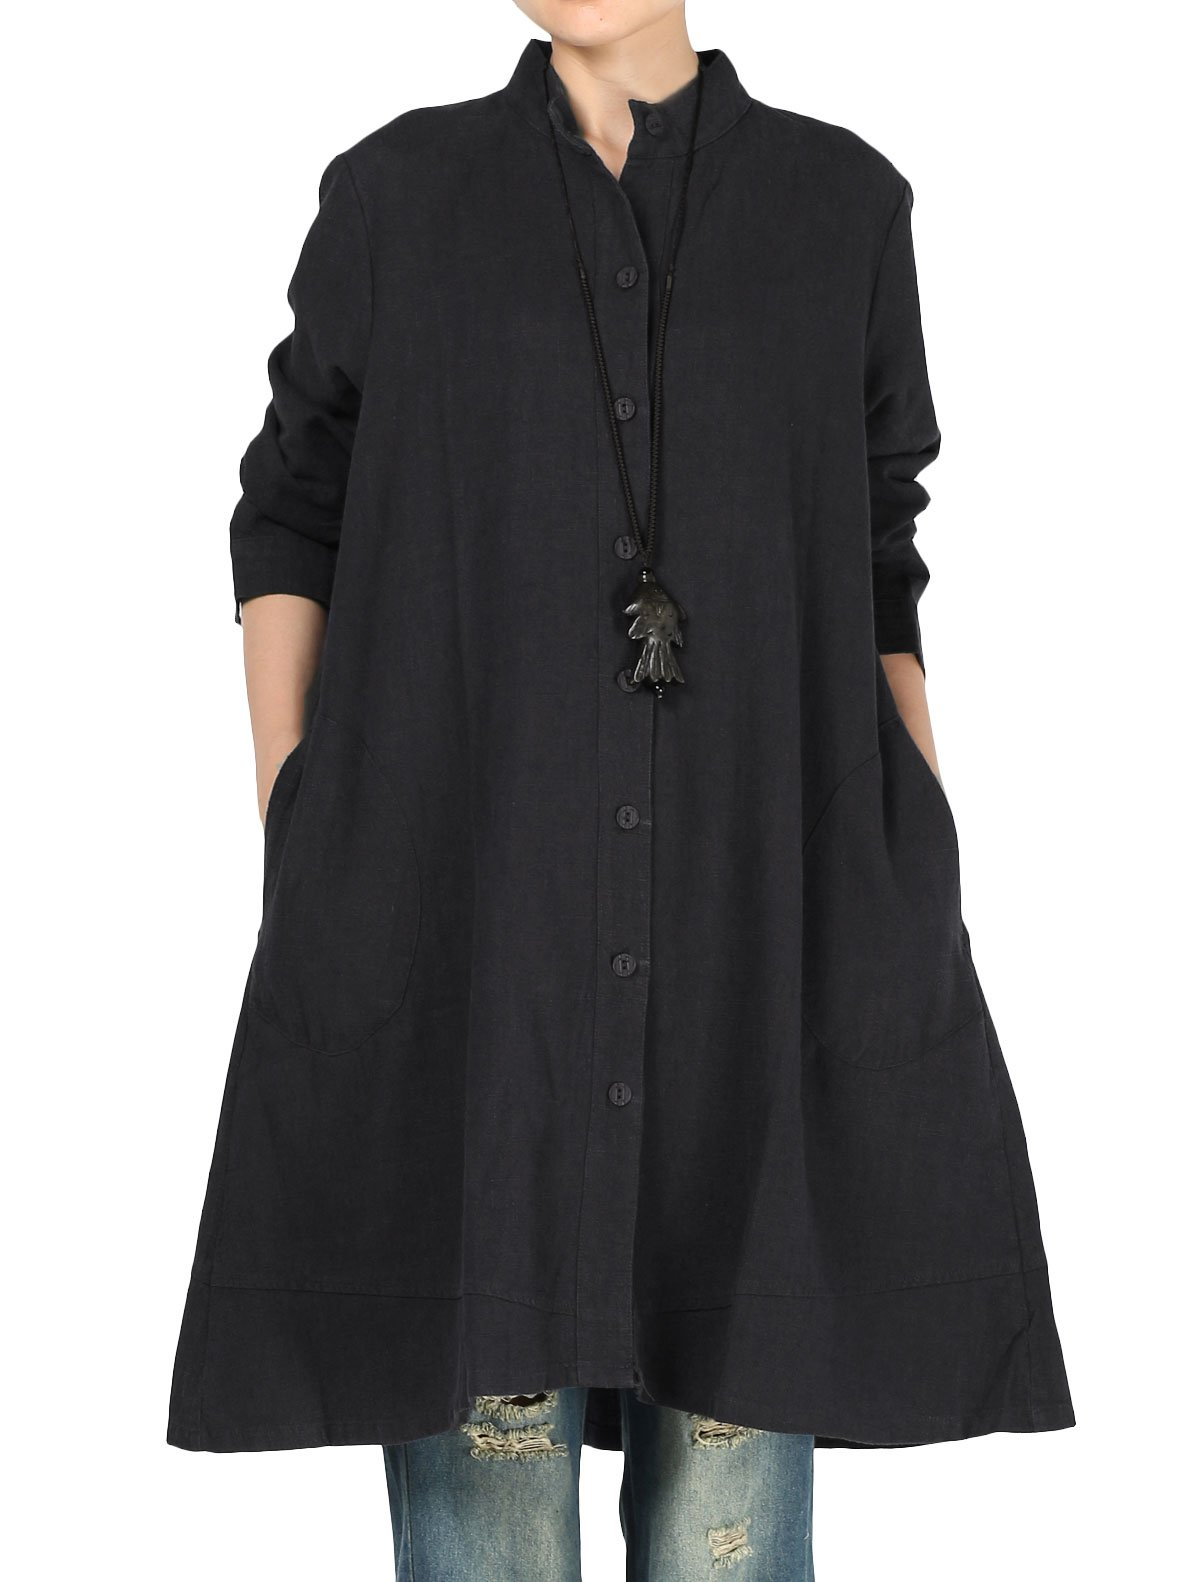 Mordenmiss Women's Cotton Linen Full Front Buttons Jacket Outfit Pockets Style 1 M Black